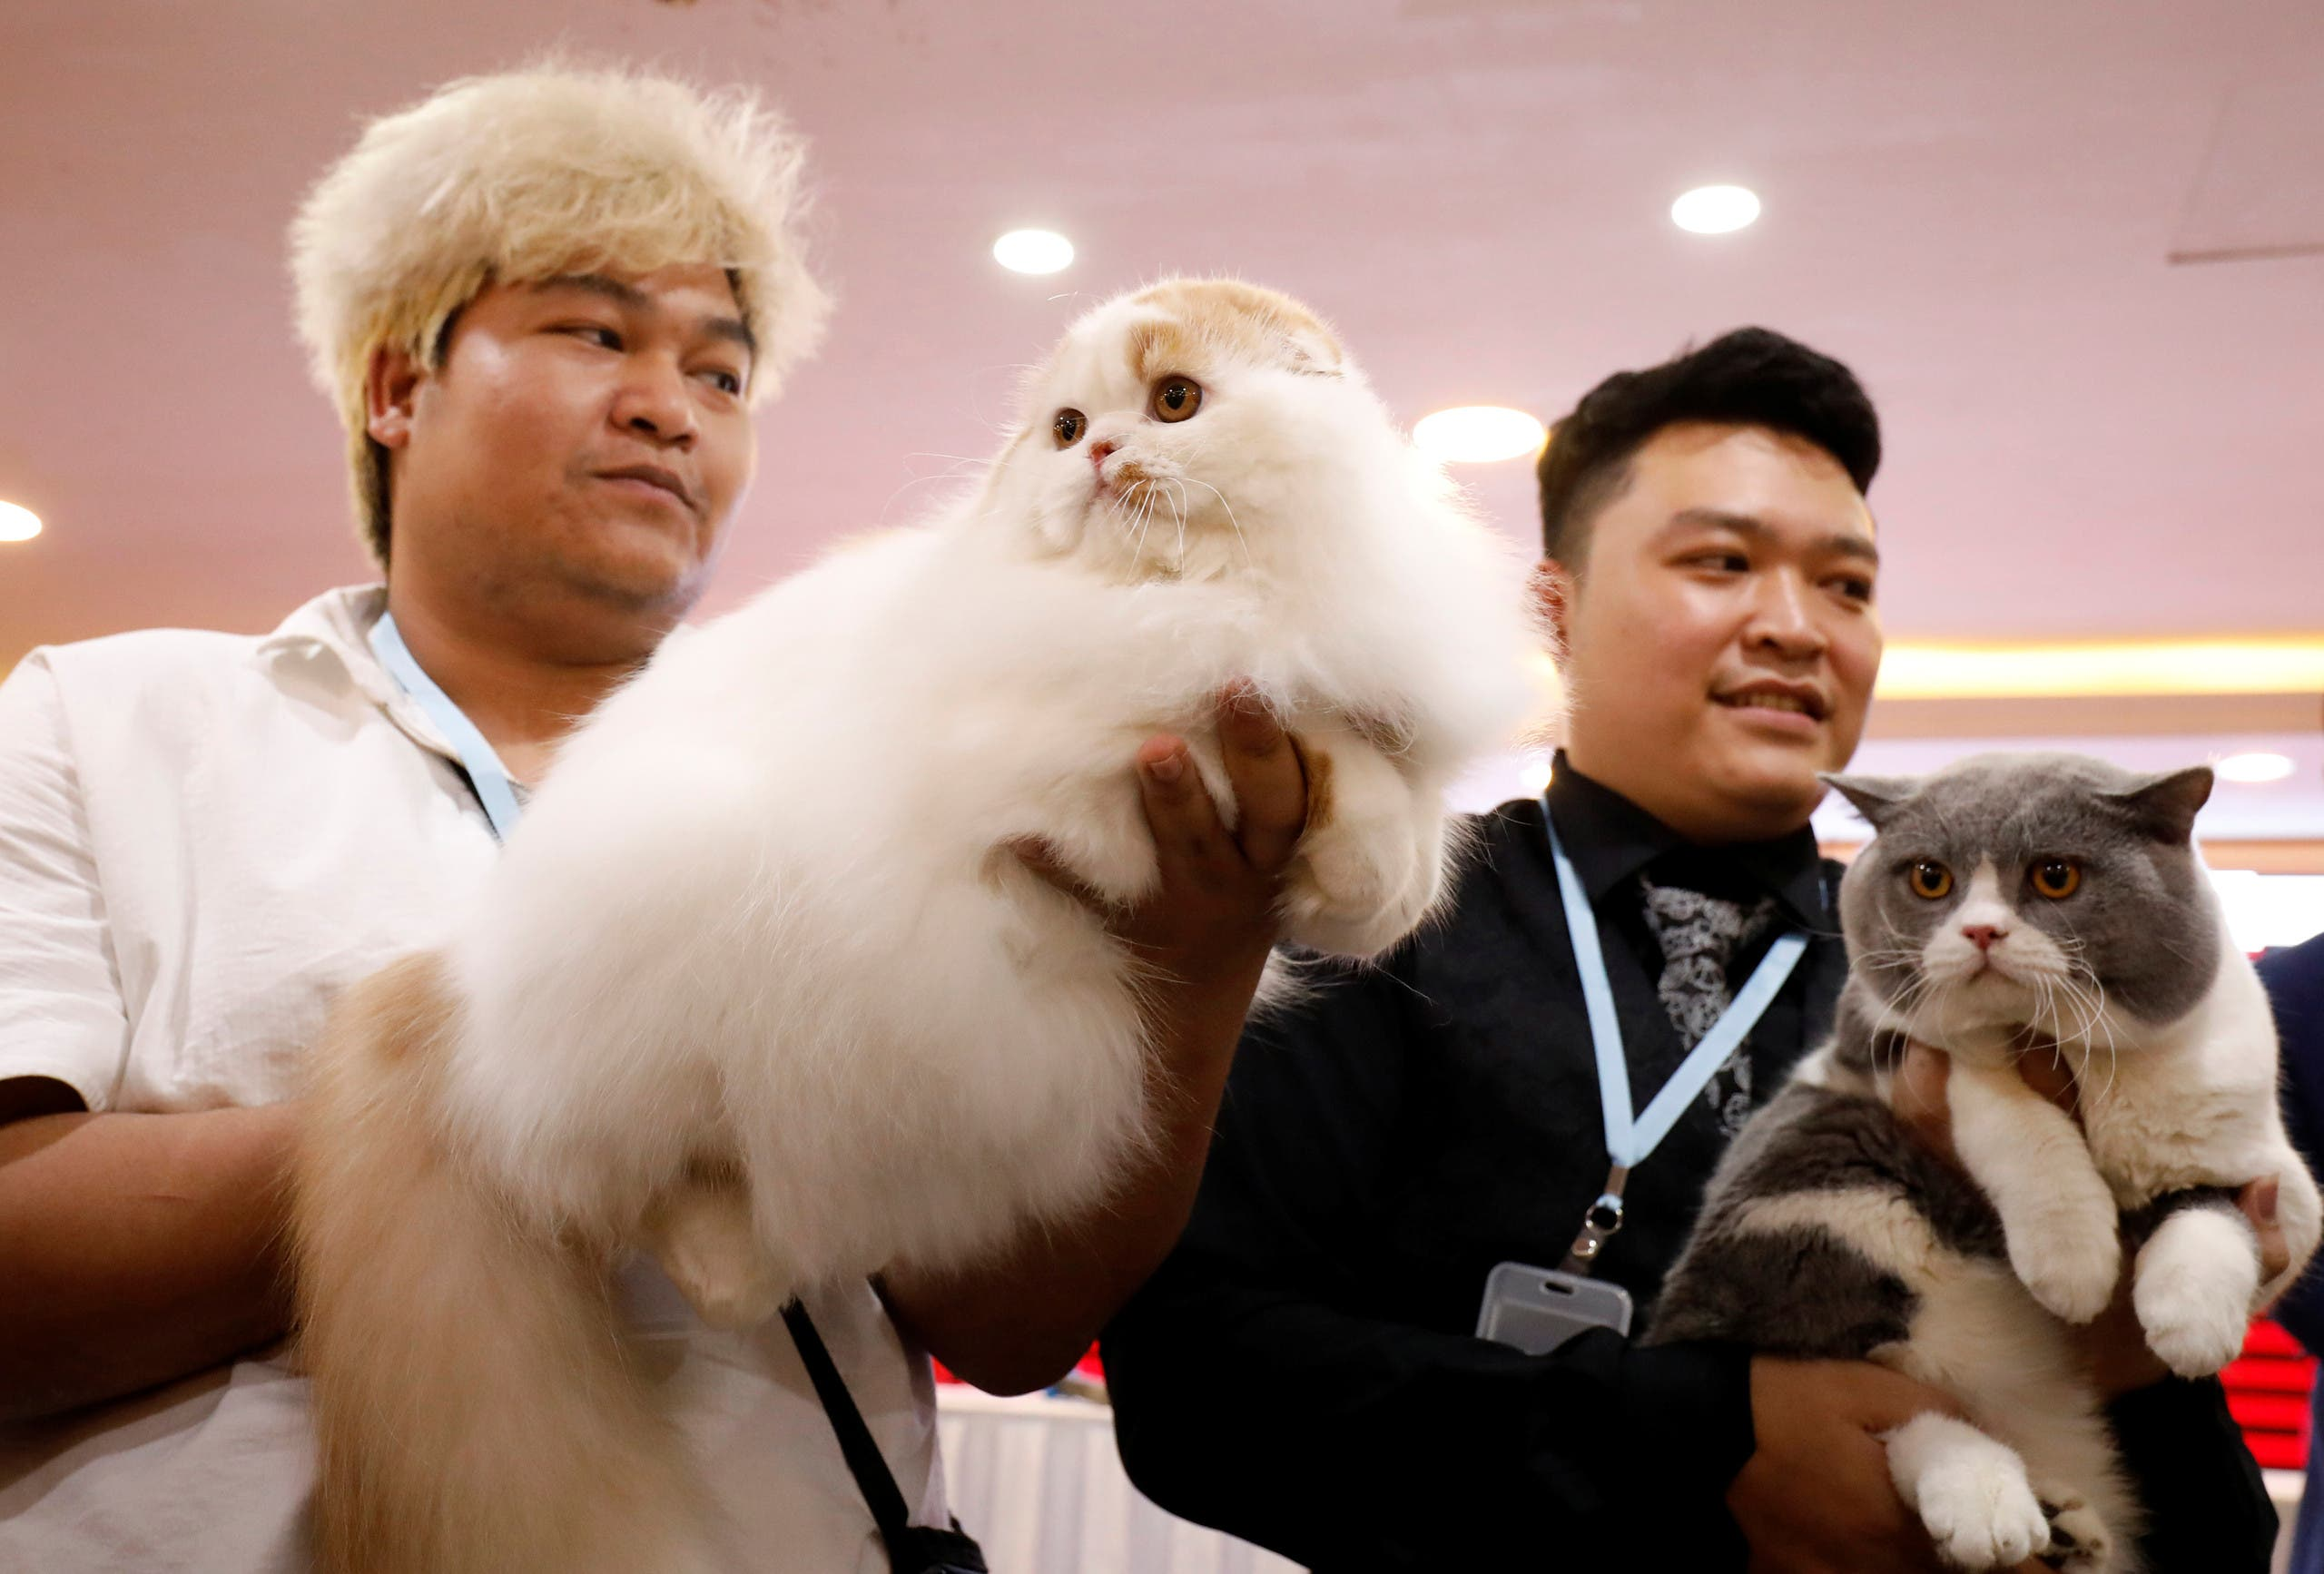 Nguyen Xuan Son of Vietnam and Tawin Prai of Thailand show their cats during the Vietnam's first cat show in Hanoi, Vietnam February 16, 2020. REUTERS